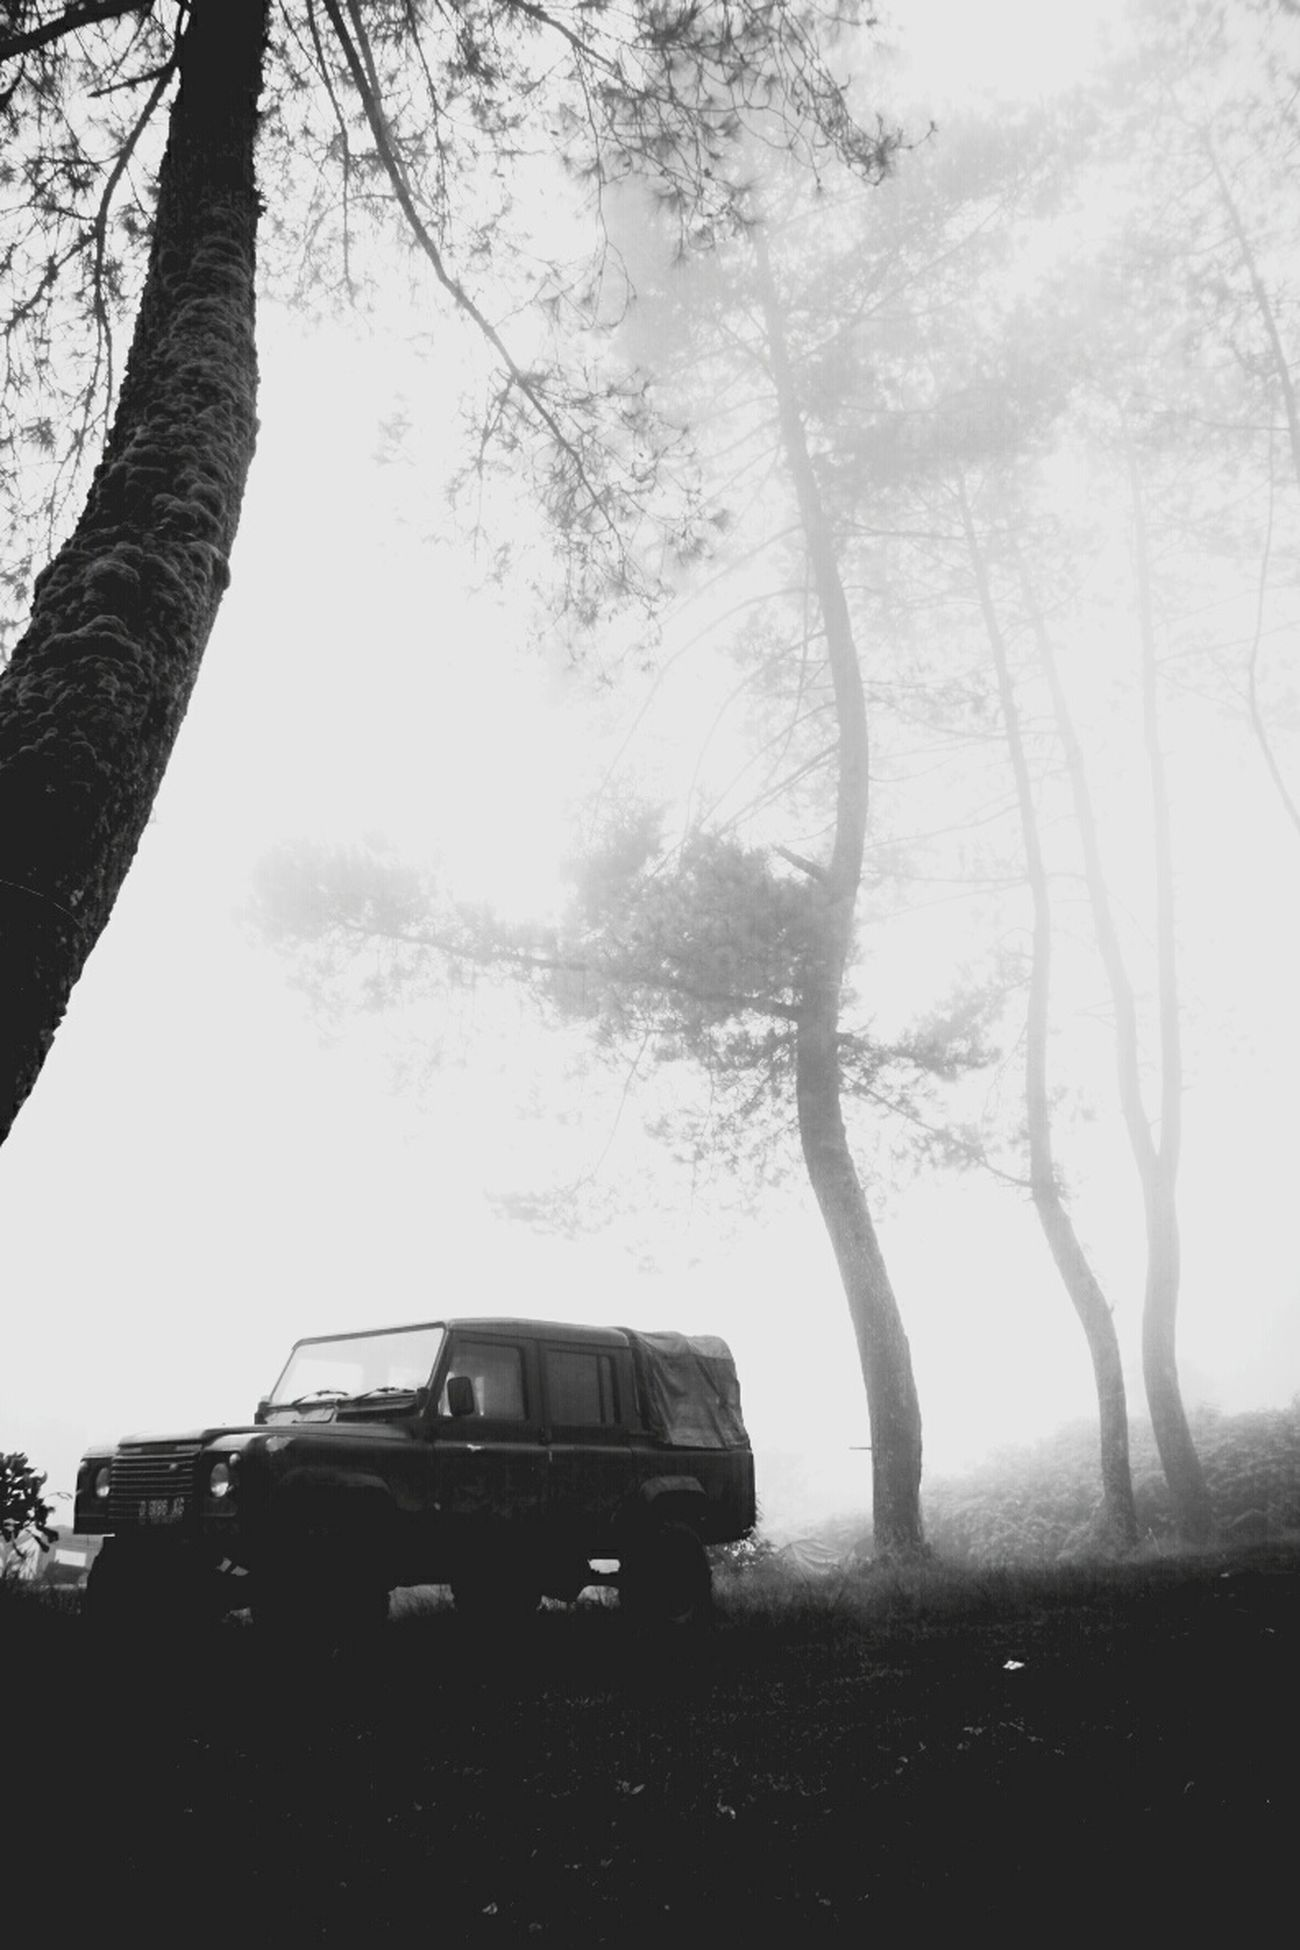 A dreamy state in morning mist Taking Photos Hello World Transportation Landscape #Nature #photography Indotravellers Westjavaindonesia Enjoying Life Black And White Black And White Photography First Eyeem Photo Bandung, West Java Landrover  Landroverphotos Landroverlove